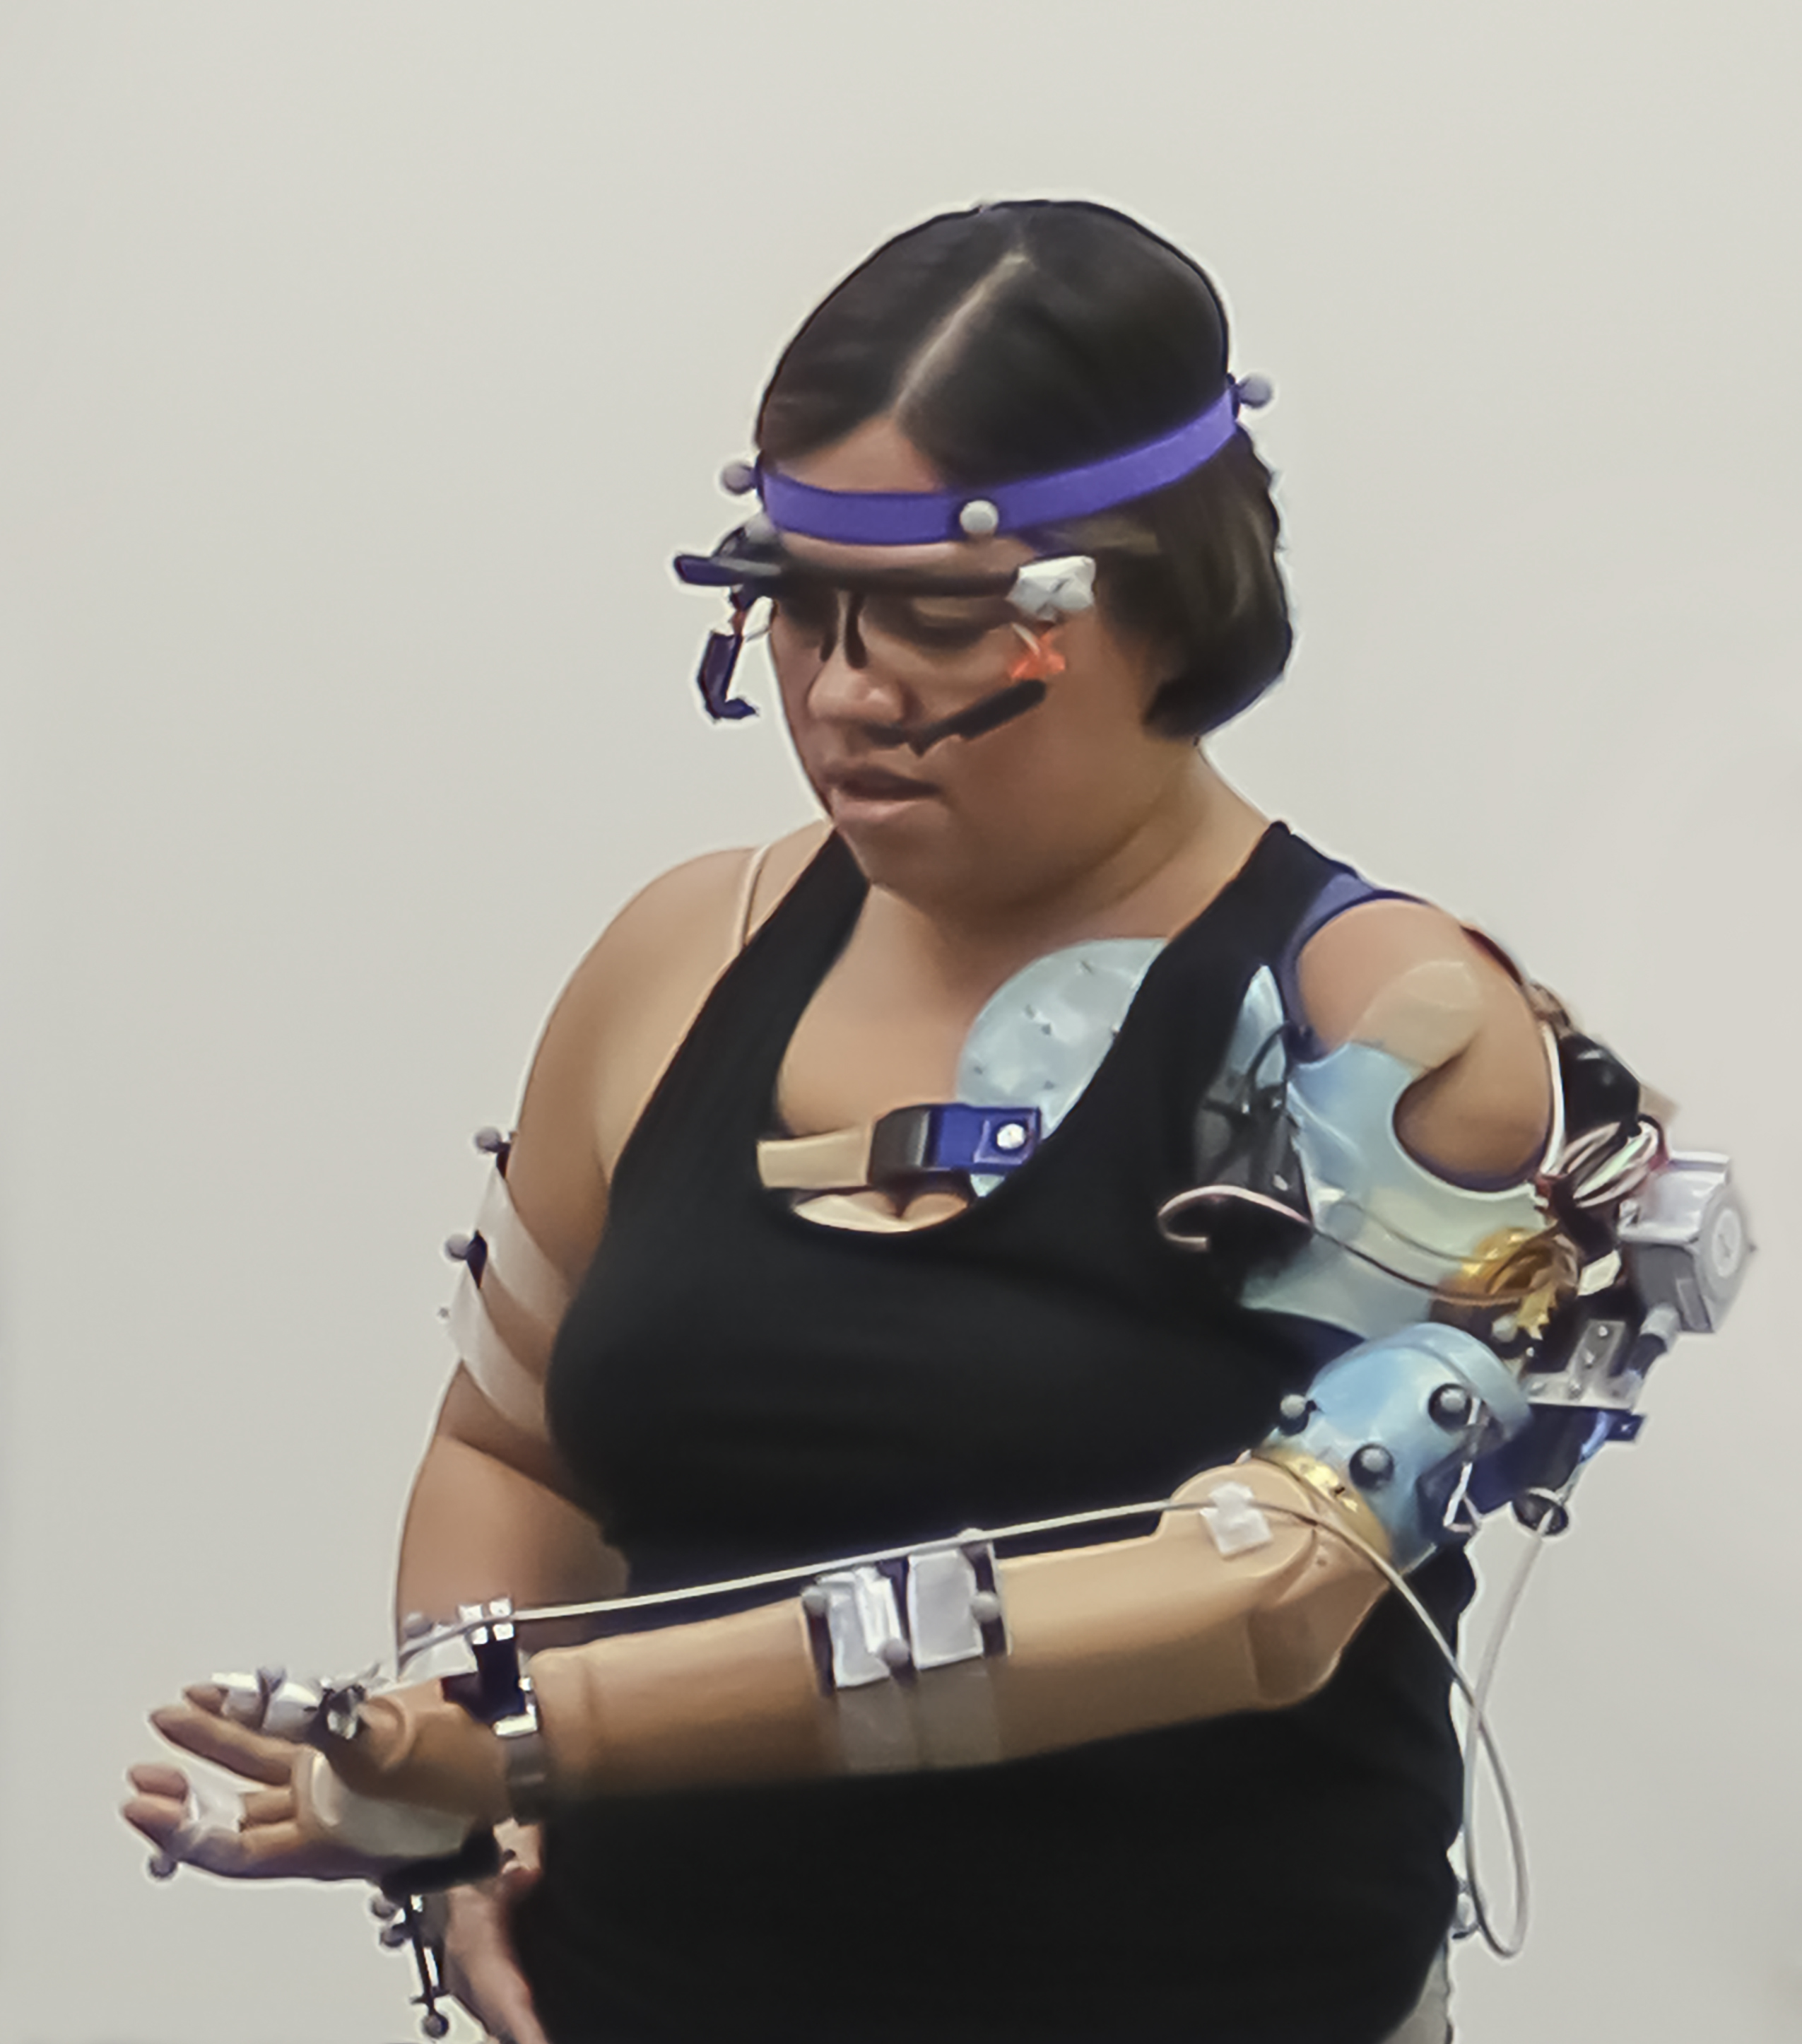 person with bionic arm